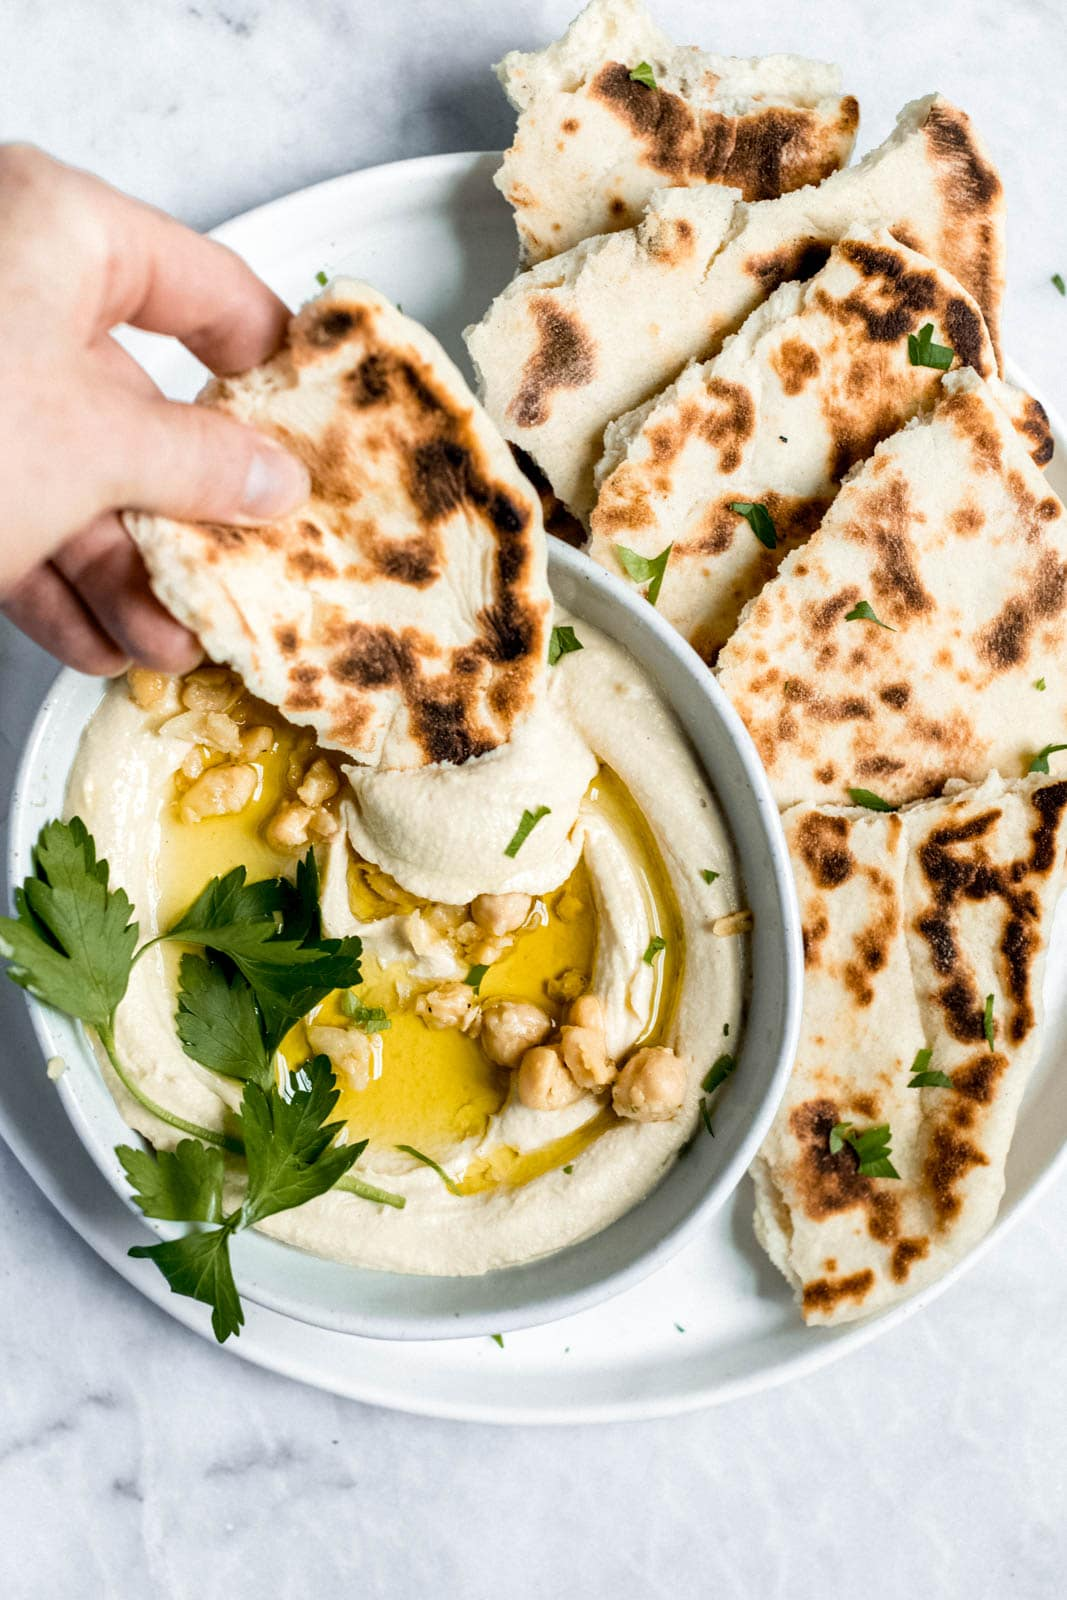 pita bread with hummus drizzled with olive oil